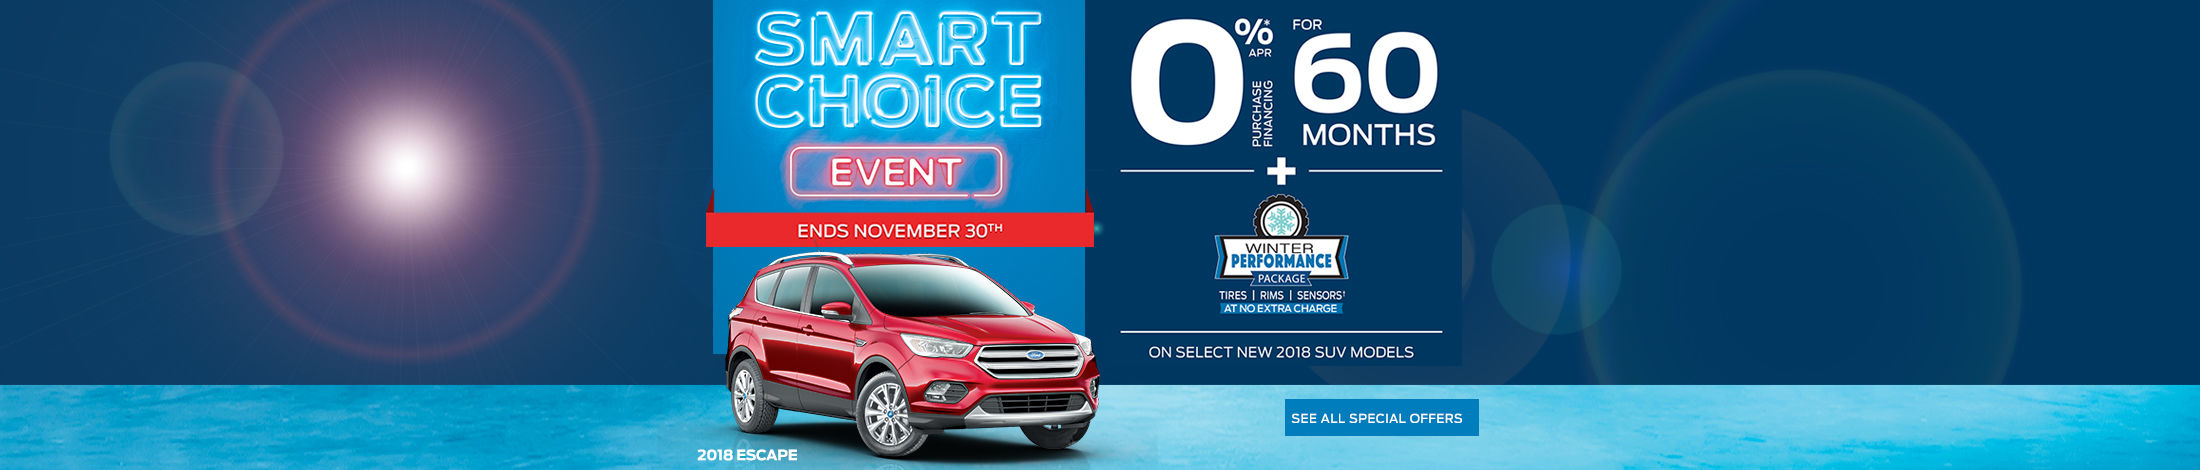 Ford Smart Choice Event